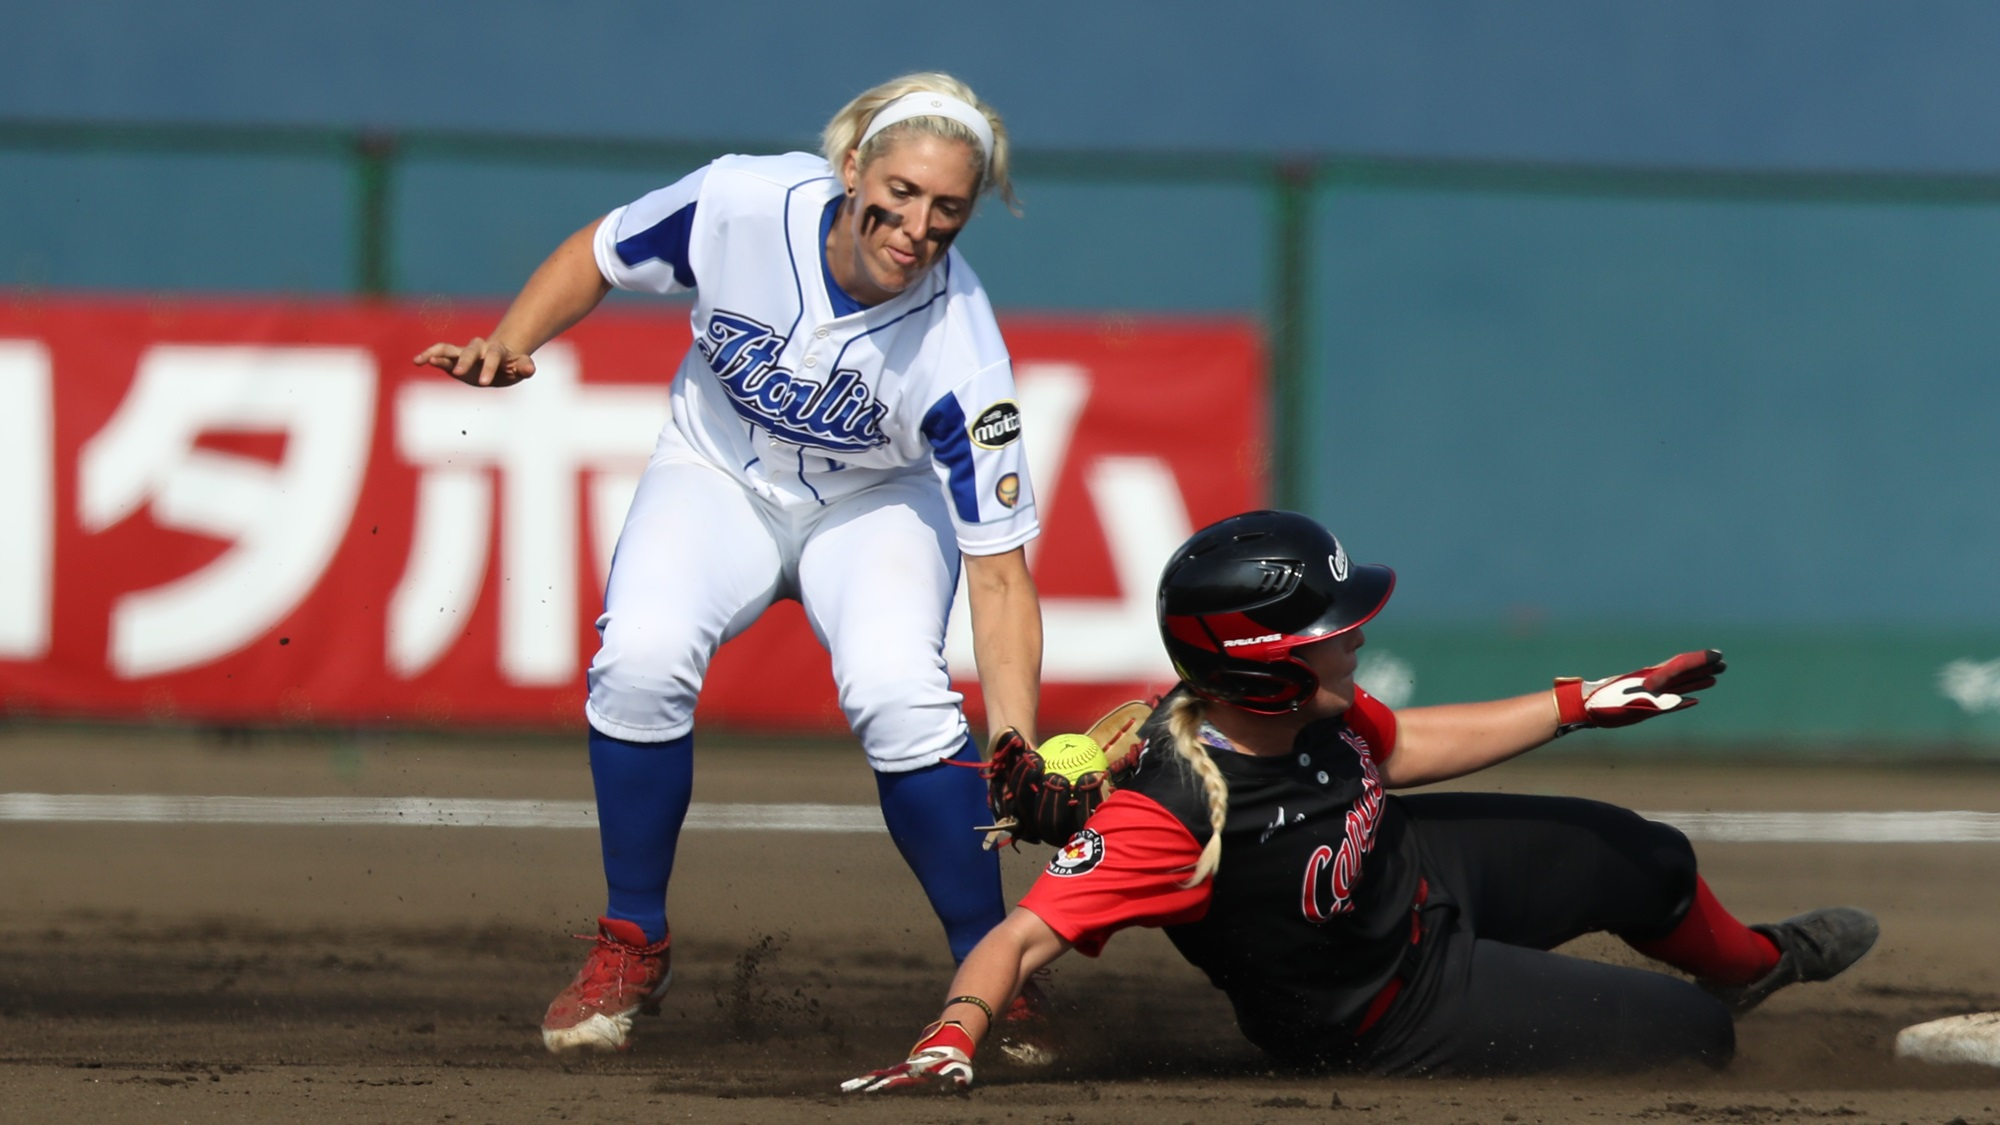 Amanda Fama defends second base for Italy against Canada